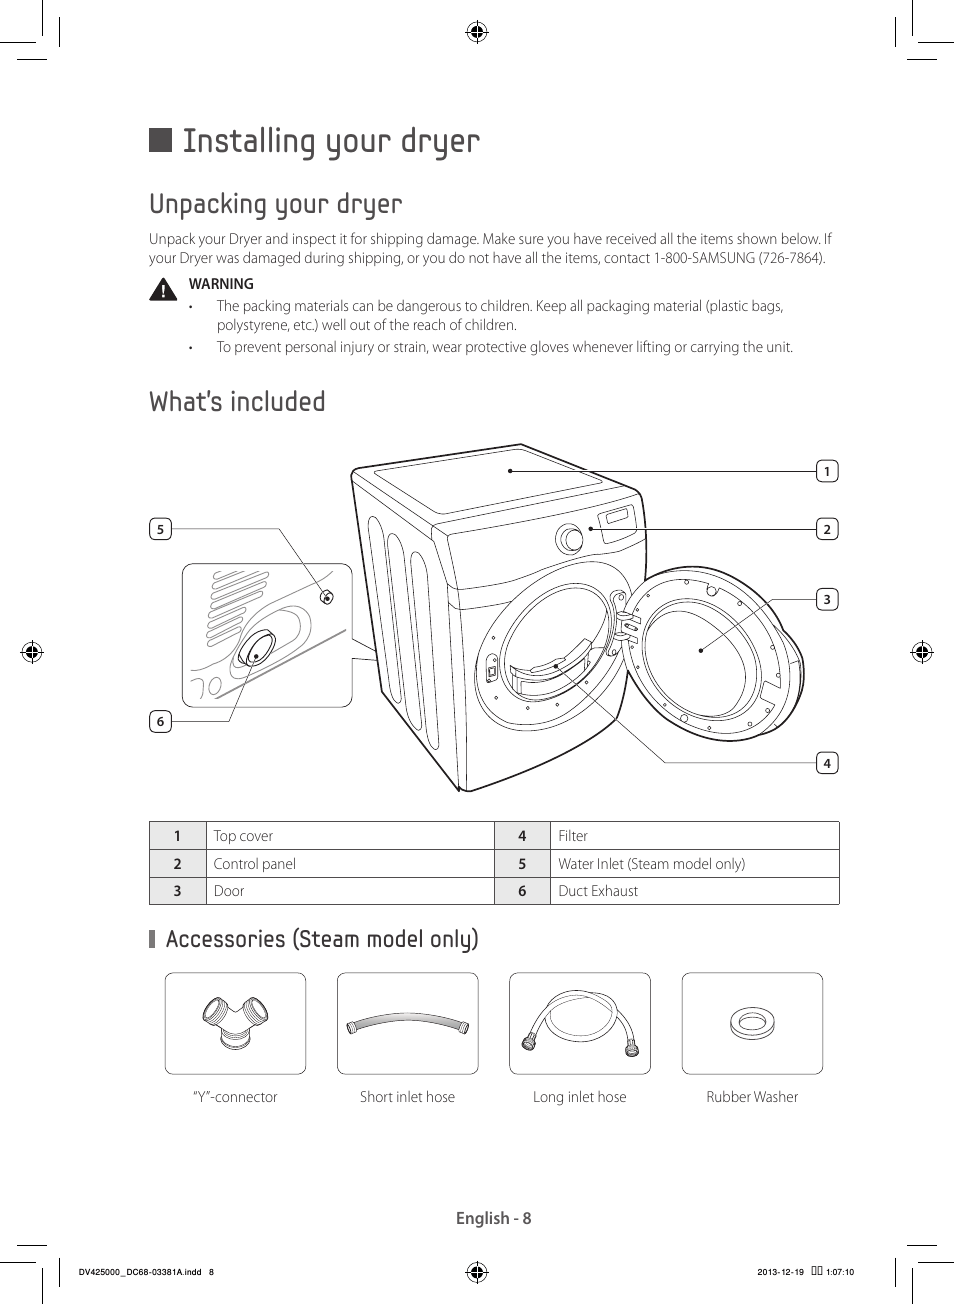 Installing your dryer, Unpacking your dryer, What's